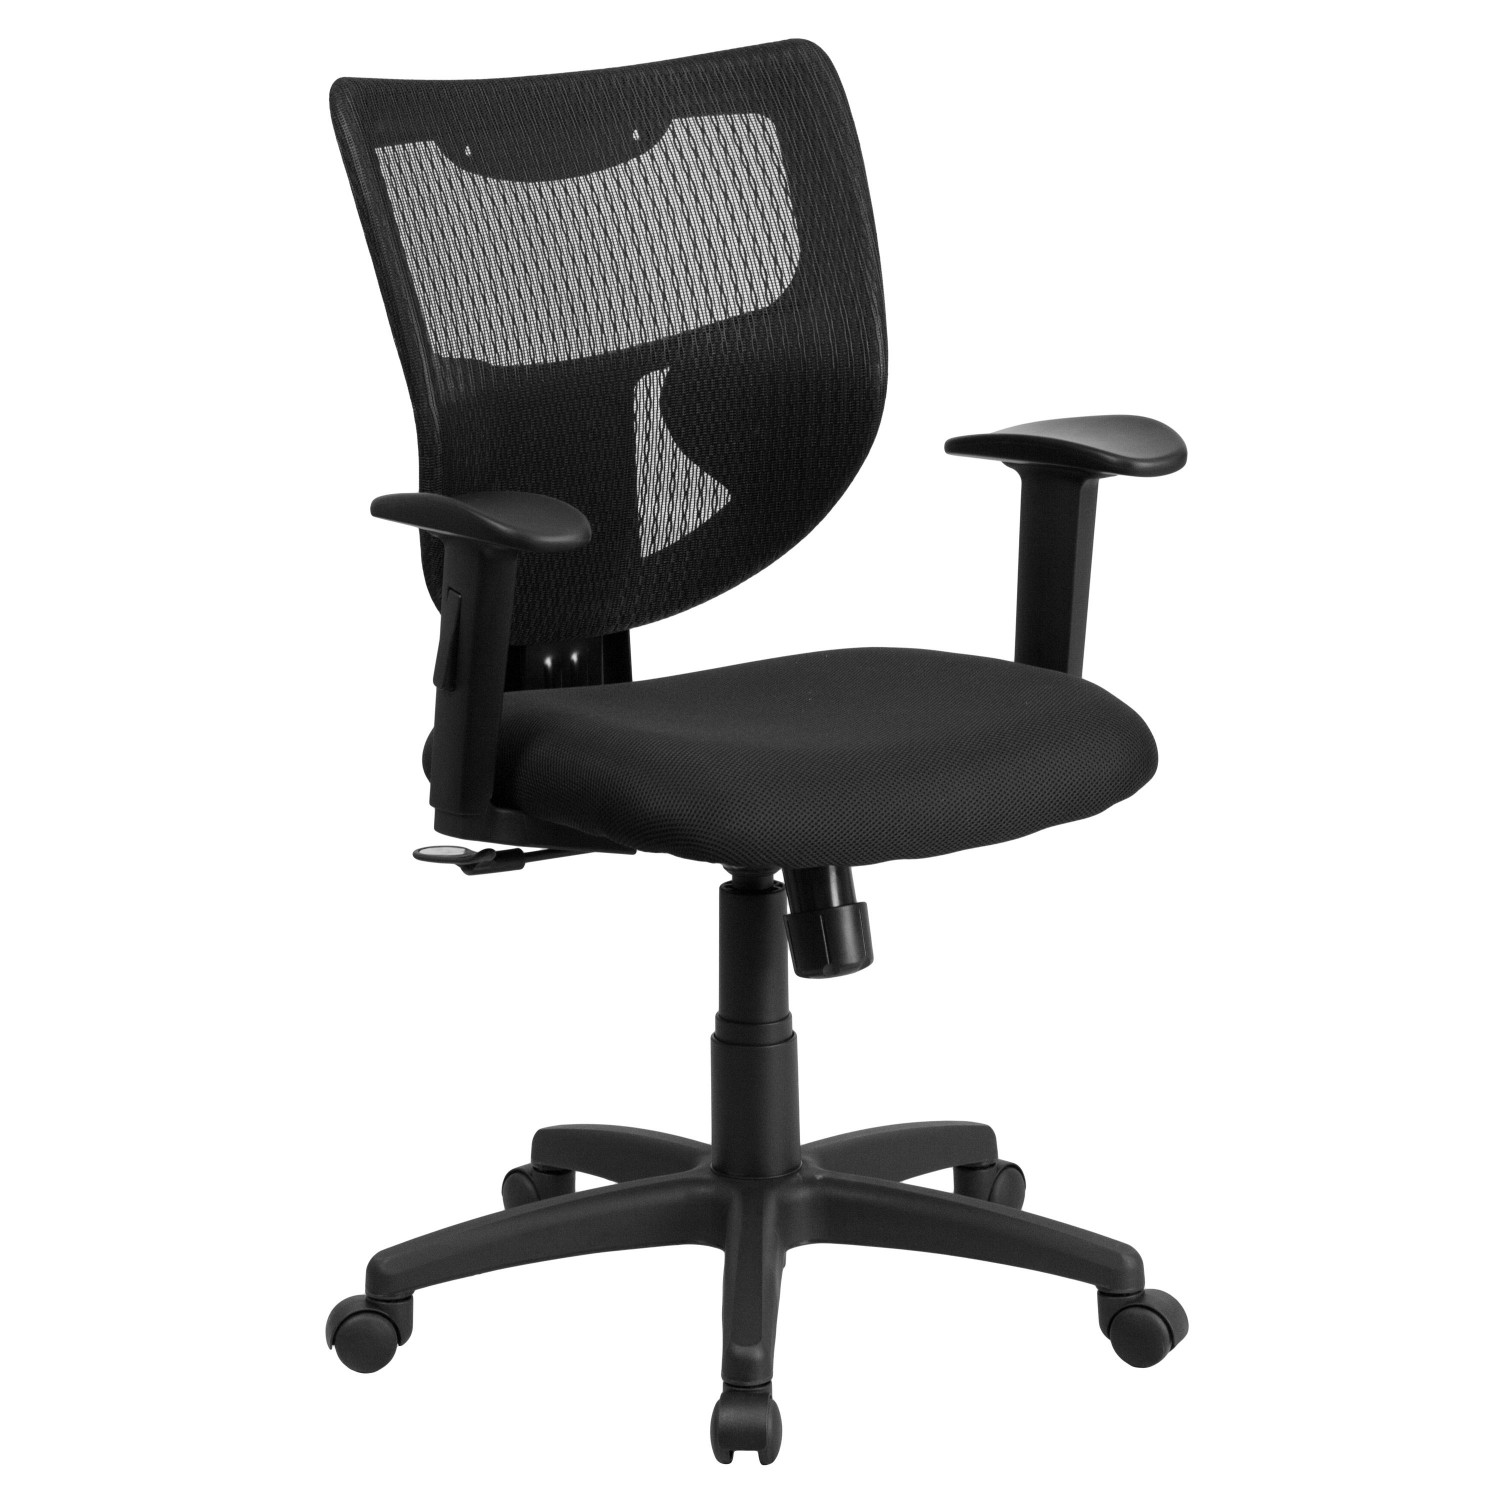 Flash Furniture WL-F061SYG-MF-A-GG Galaxy Mid-Back Designer Back Task Chair with Adjustable Height Arms, Padded Fabric Seat